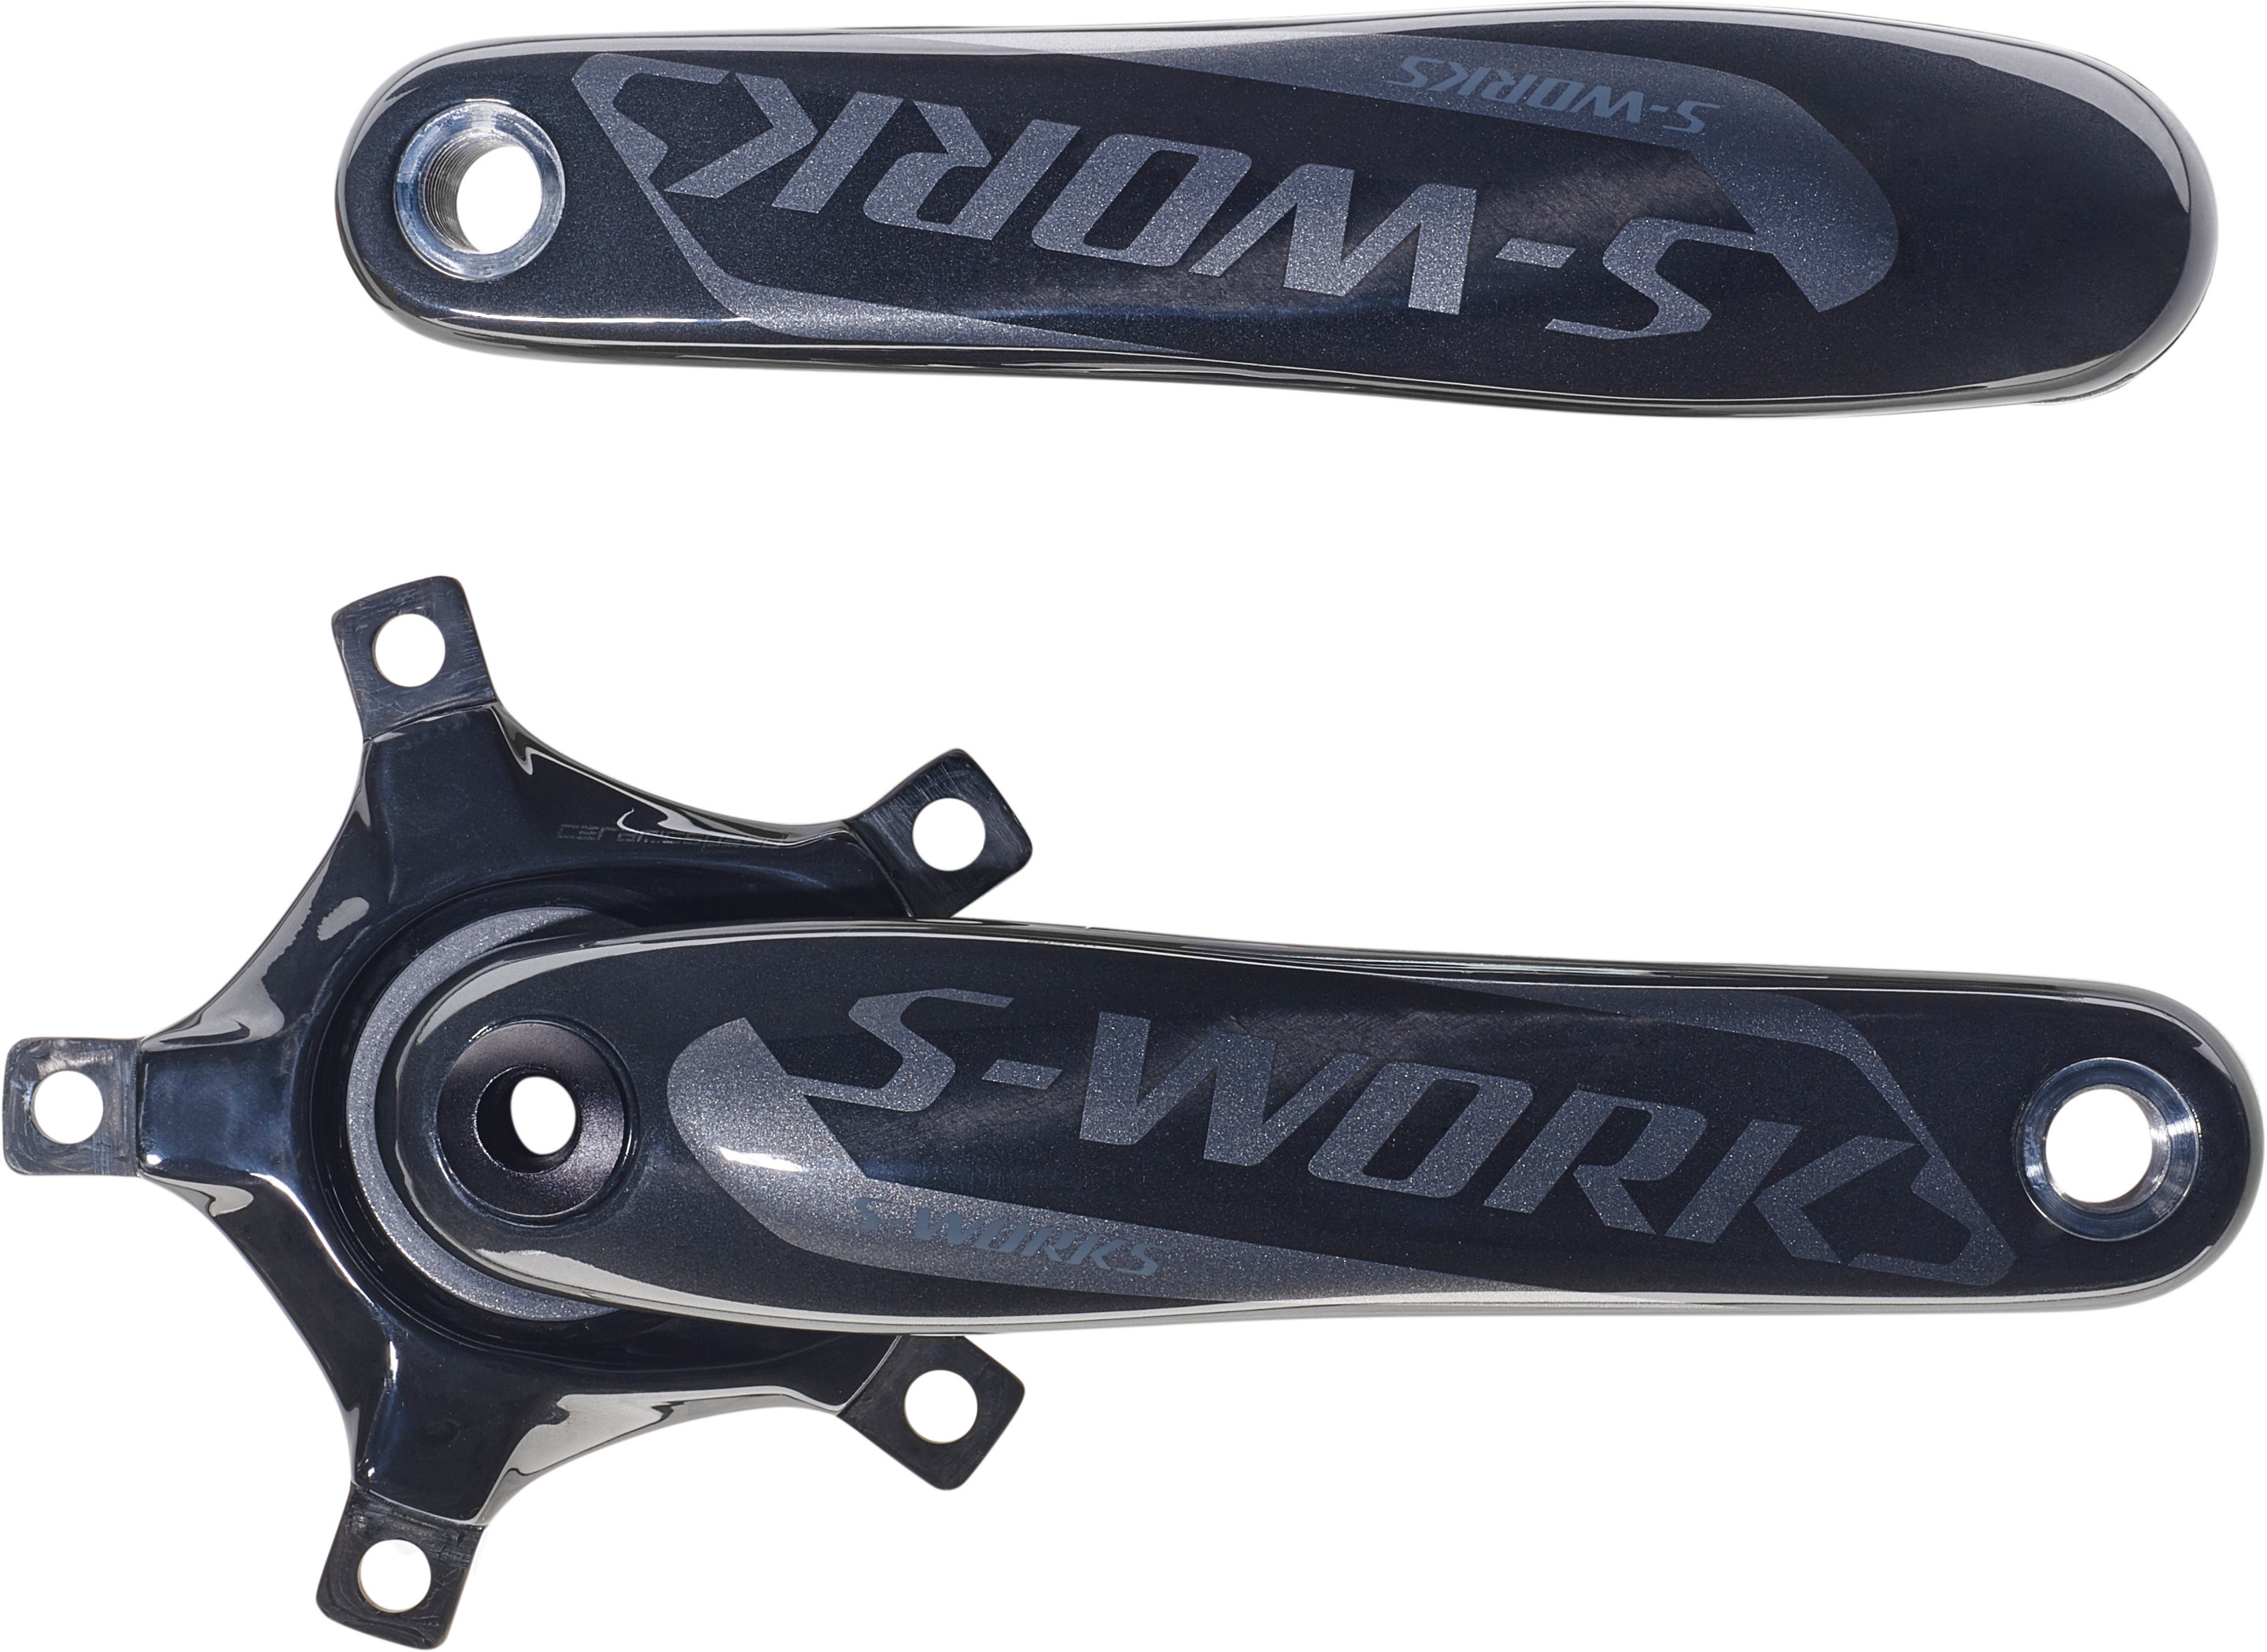 SPECIALIZED SW CARBON CRANK SET RD CHAR 170 - Bikedreams & Dustbikes